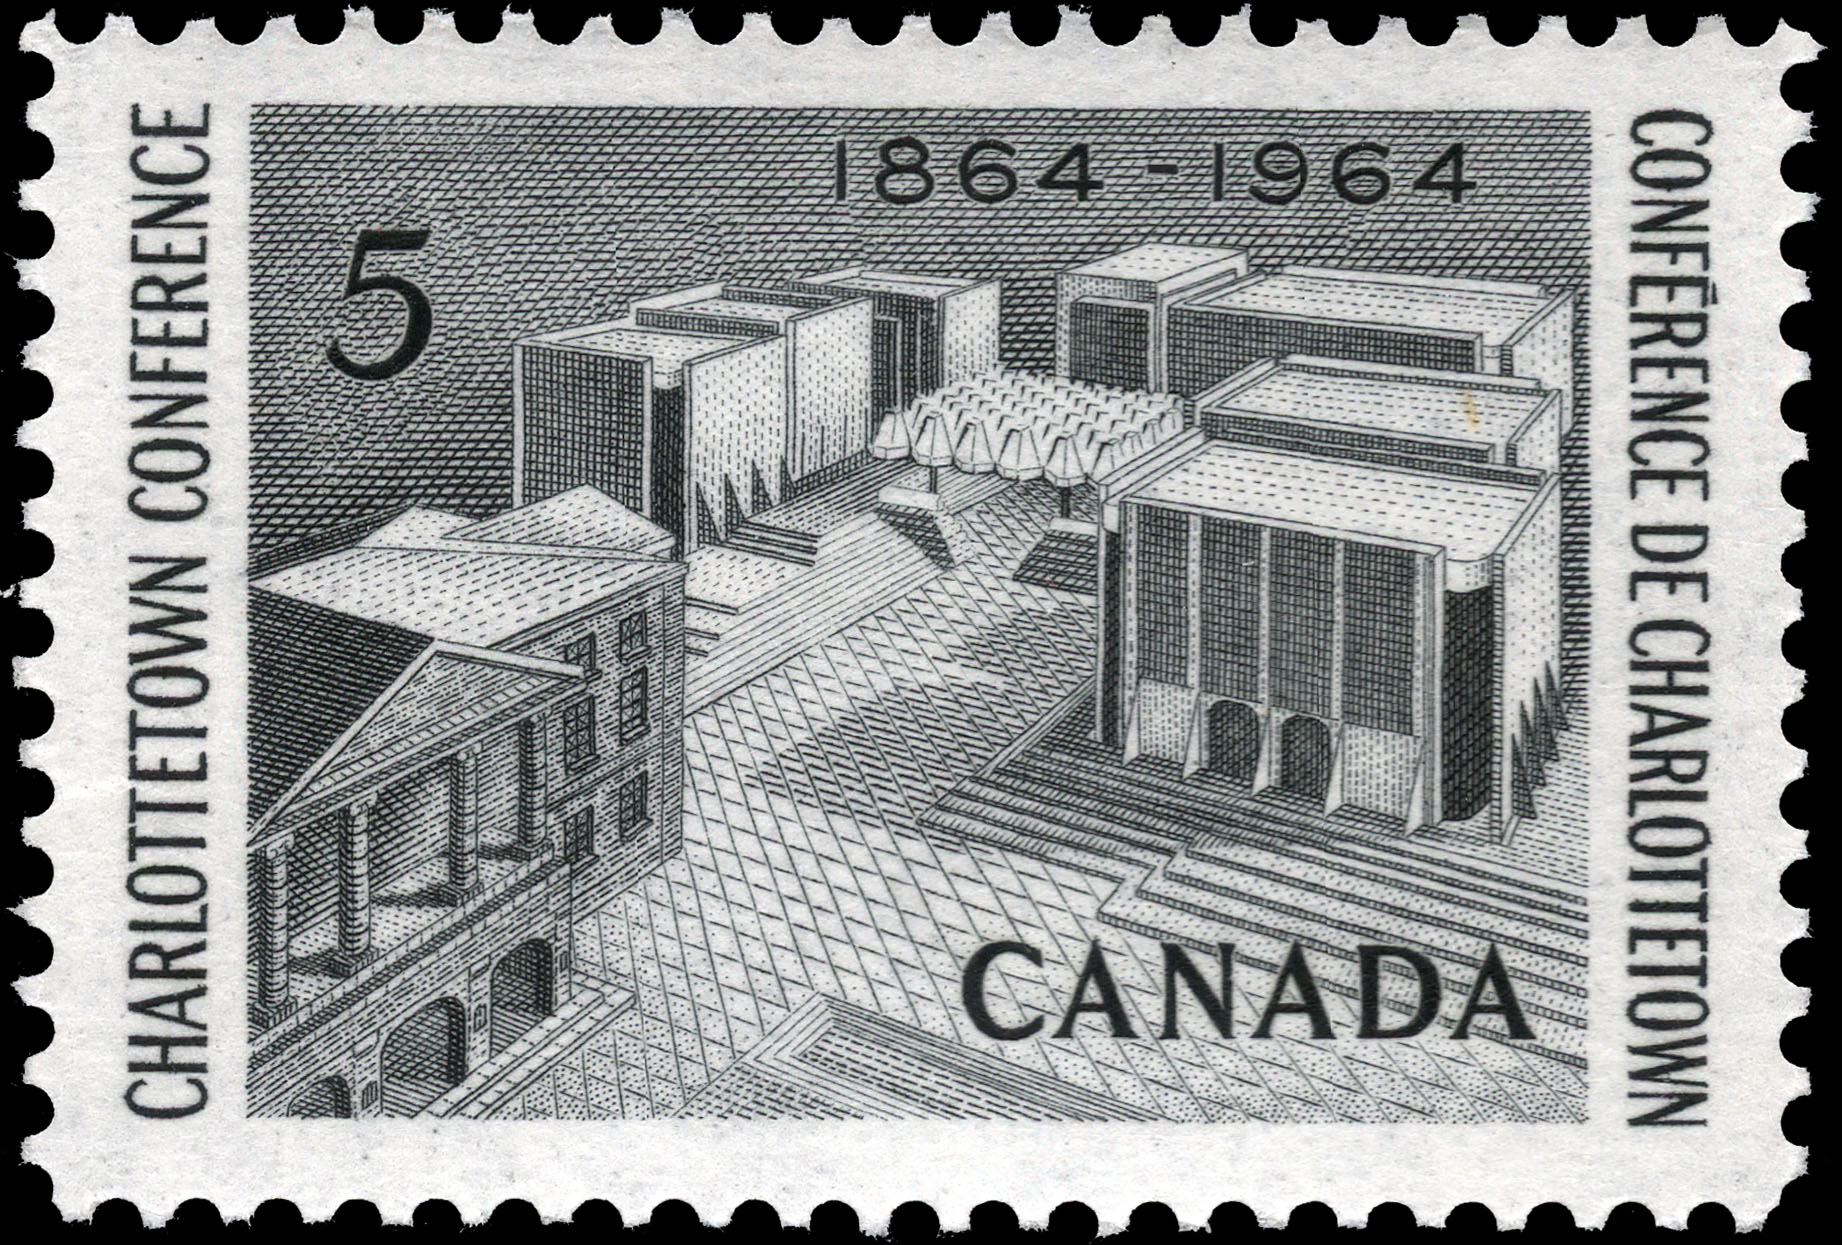 Charlottetown Conference, 1864-1964 Canada Postage Stamp